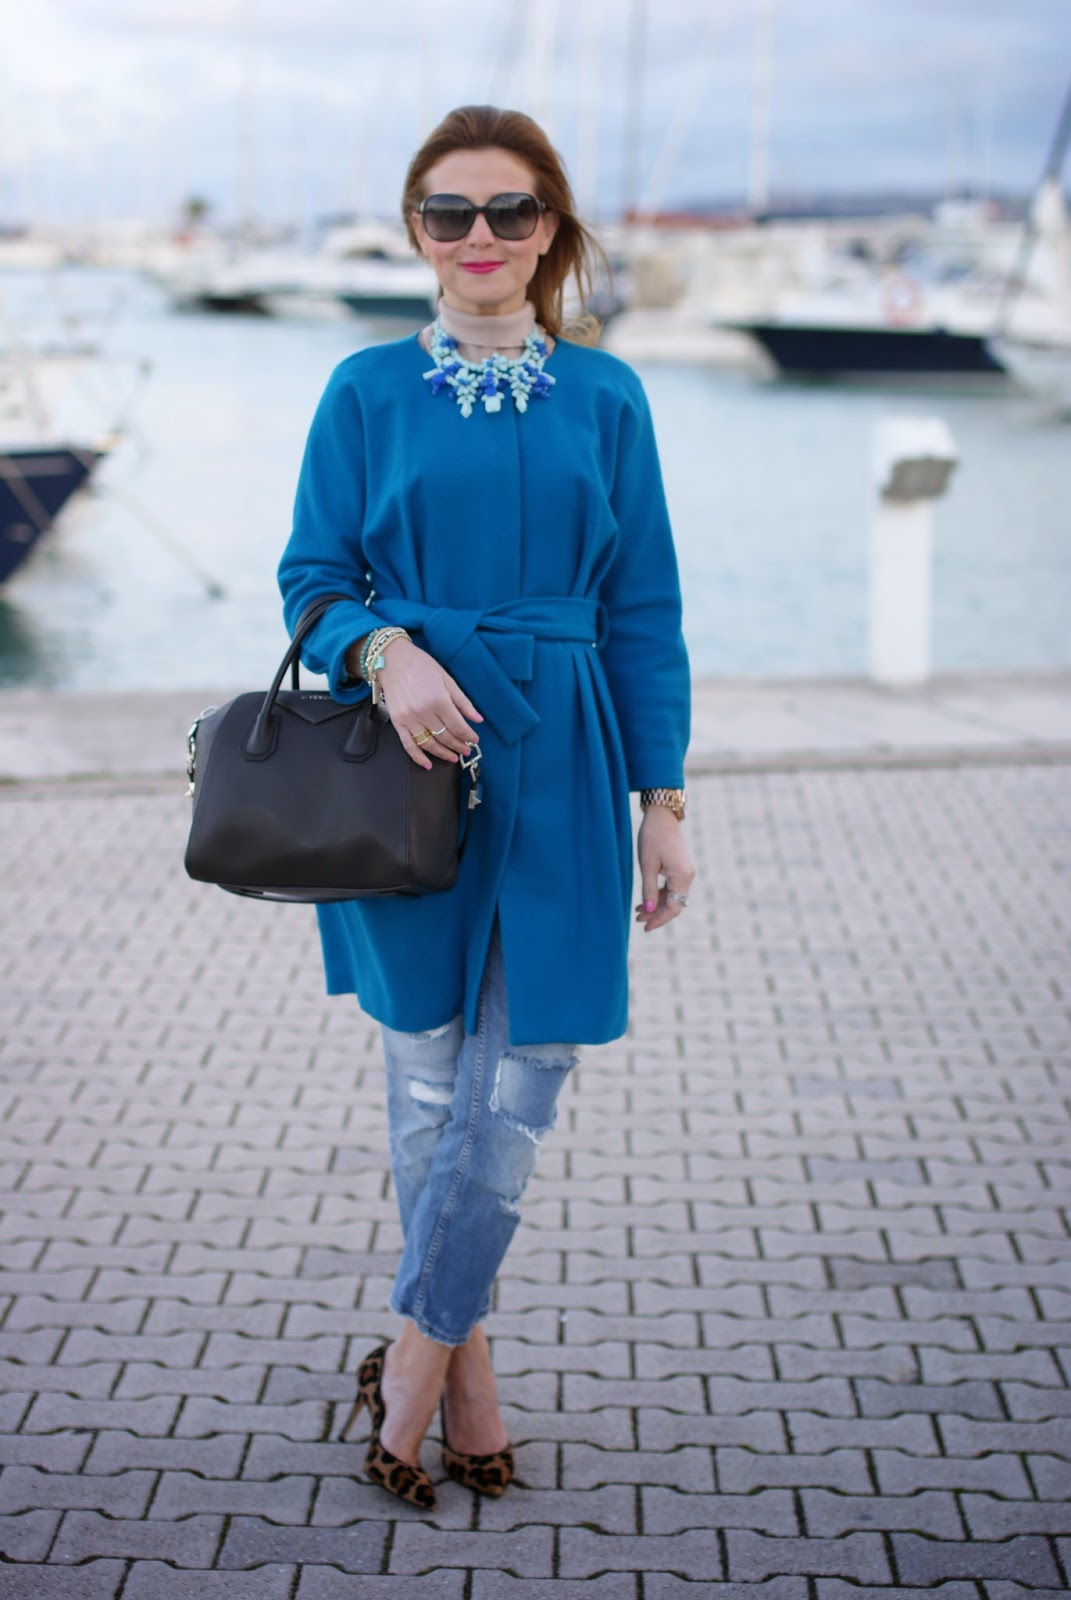 Givenchy Antigona bag, Gianni Marra leopard pumps, Sapphire blue coat, Fashion and Cookies, fashion blogger